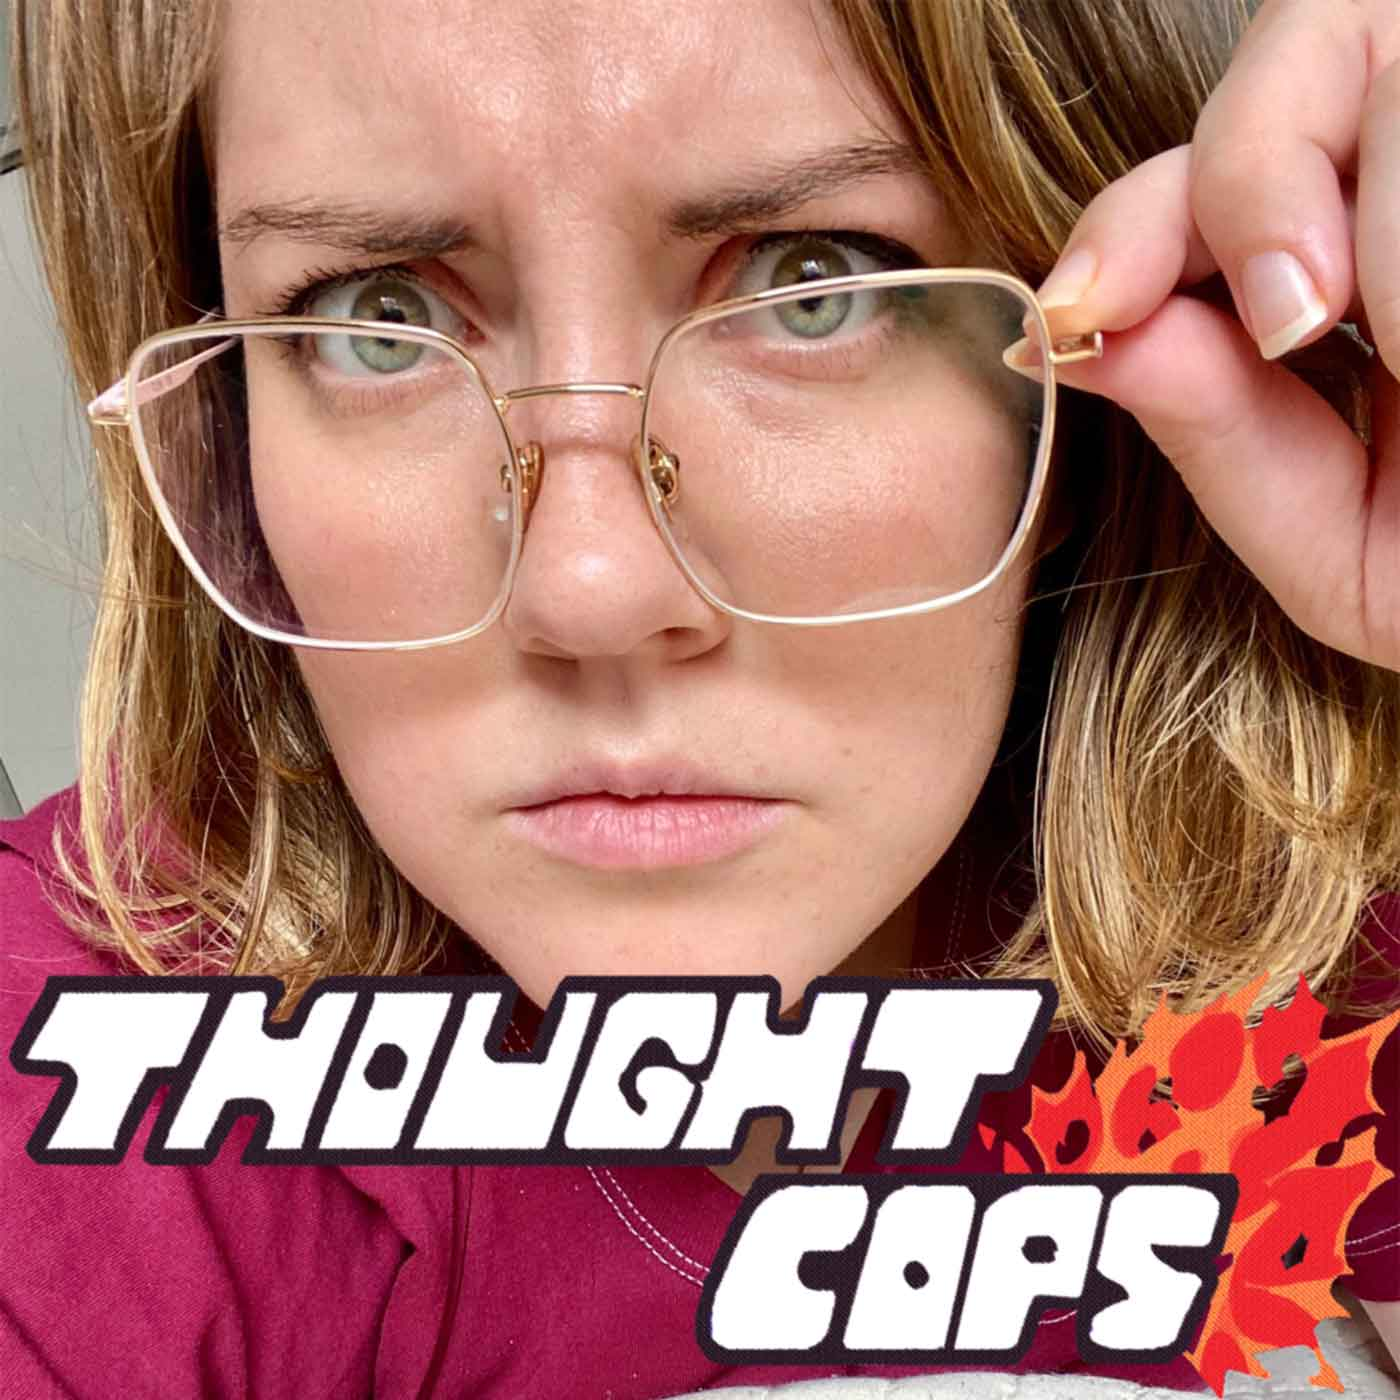 177-thought-cops-Sarah-Black-Please-Save-Me